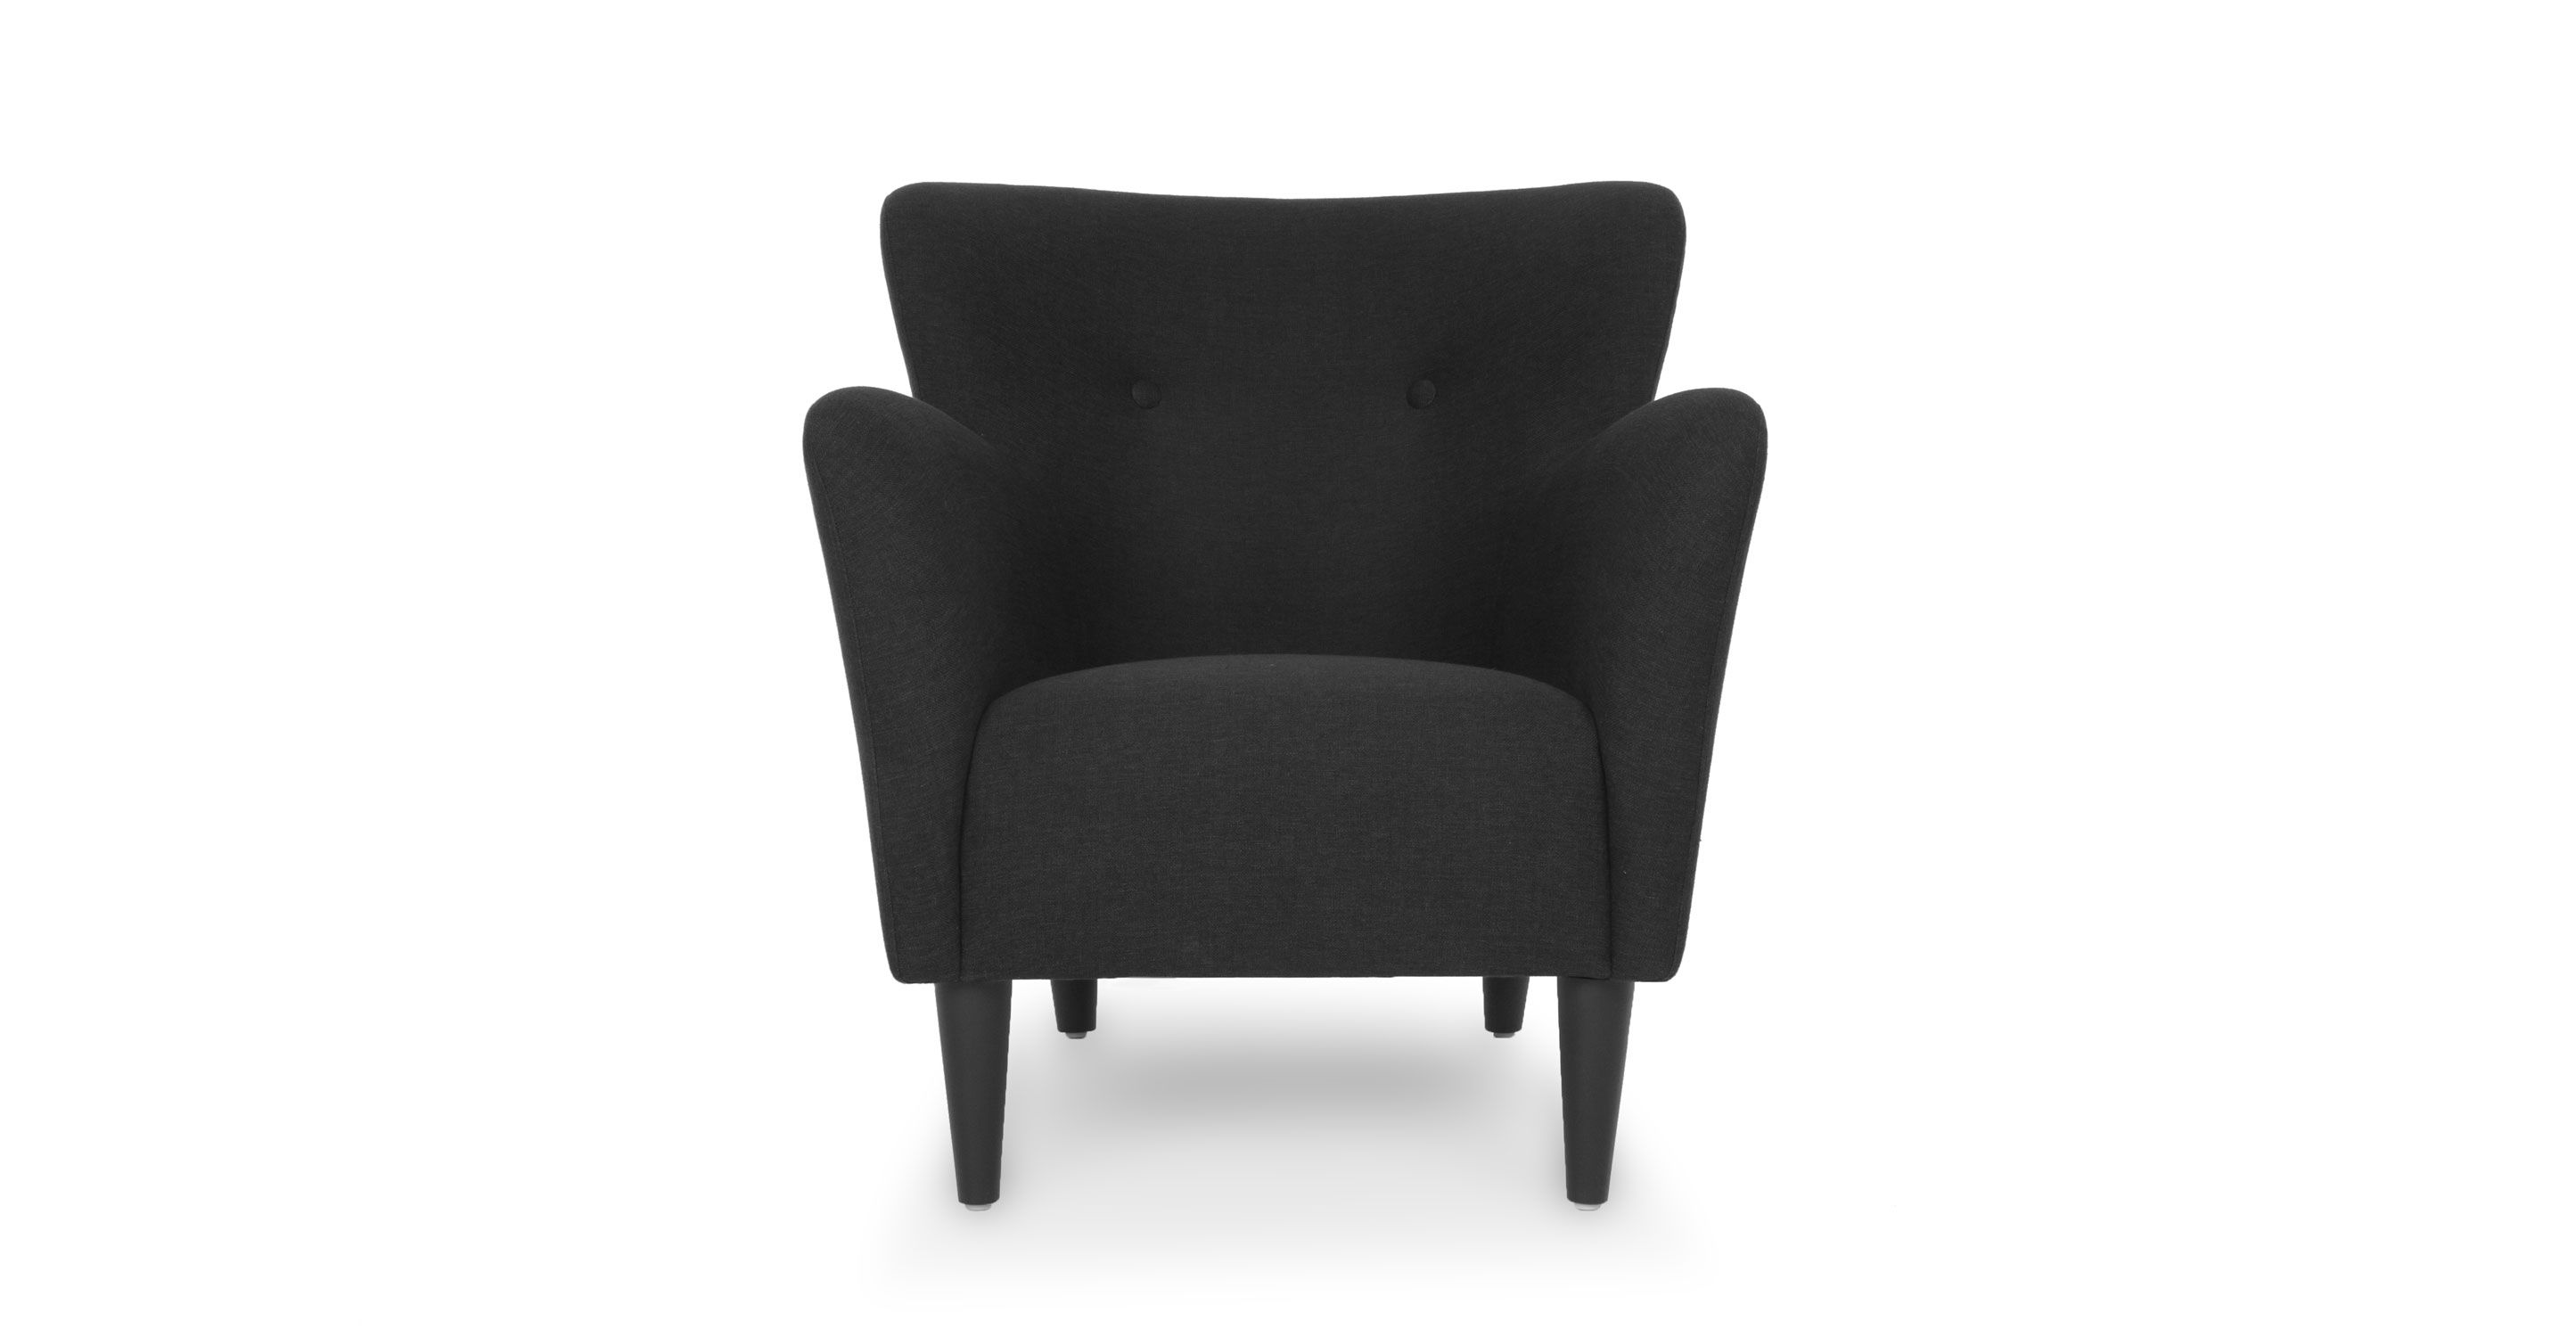 Happy Charcoal Gray Armchair   Lounge Chairs   Article | Modern,  Mid Century And